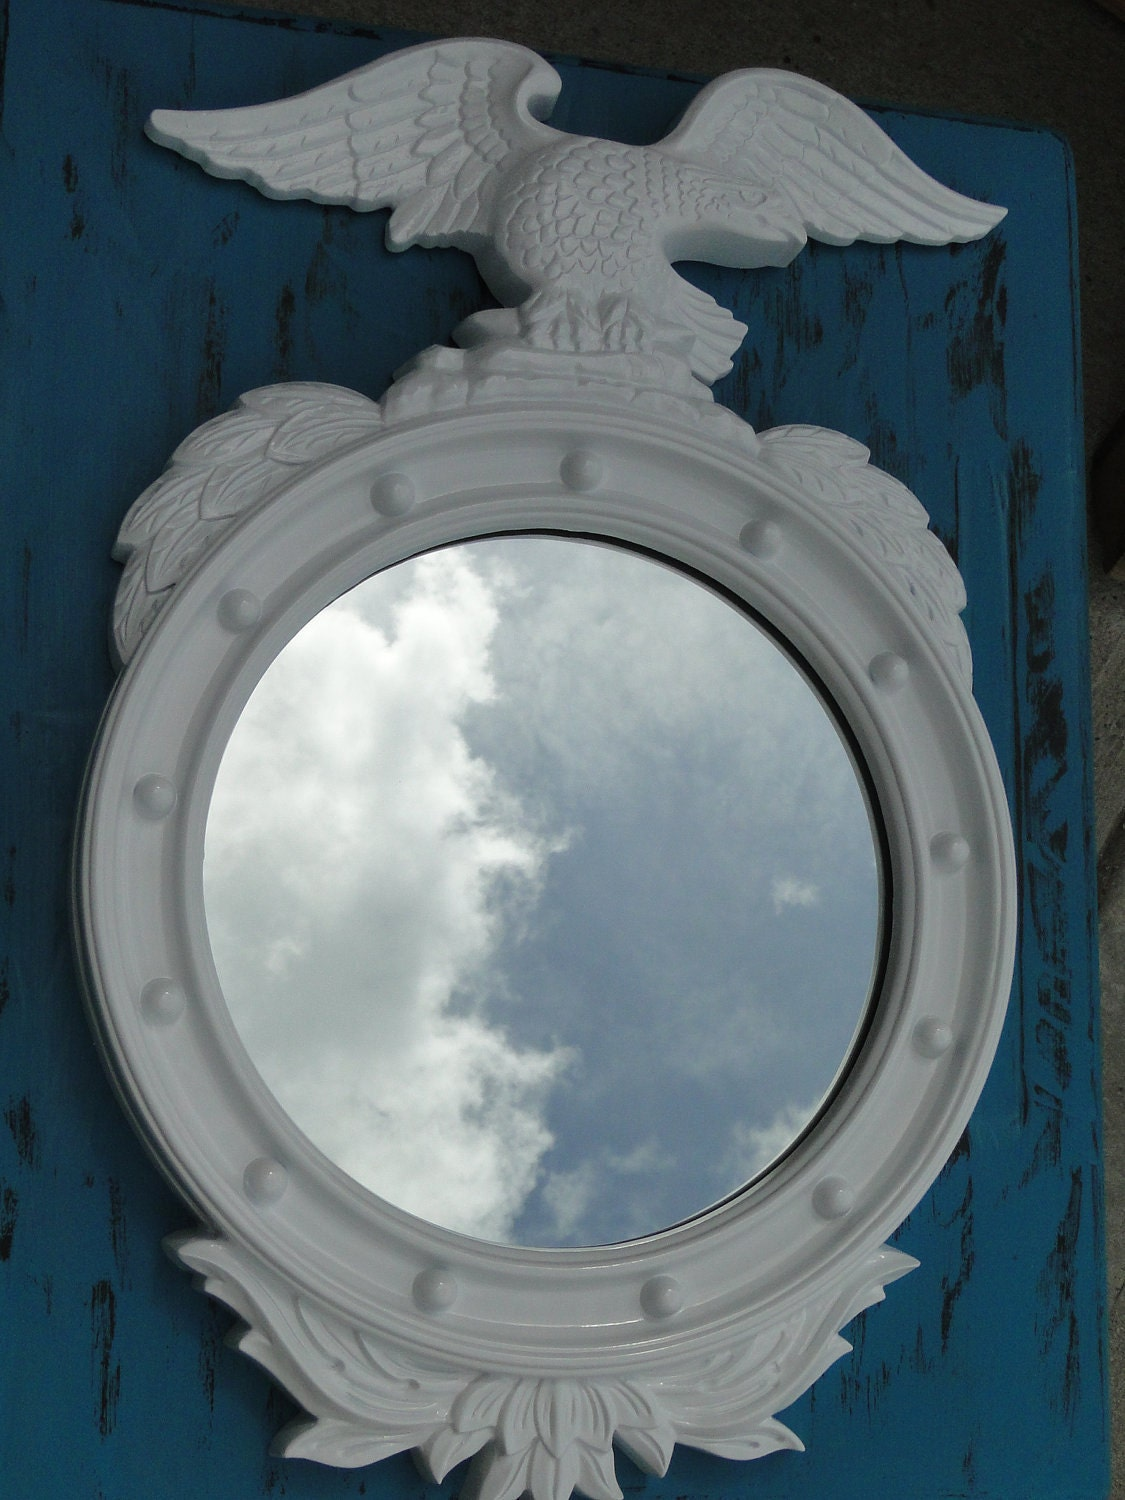 Large Vintage Ornate Round Nautical Mirror with Eagle in Pure Glossy White